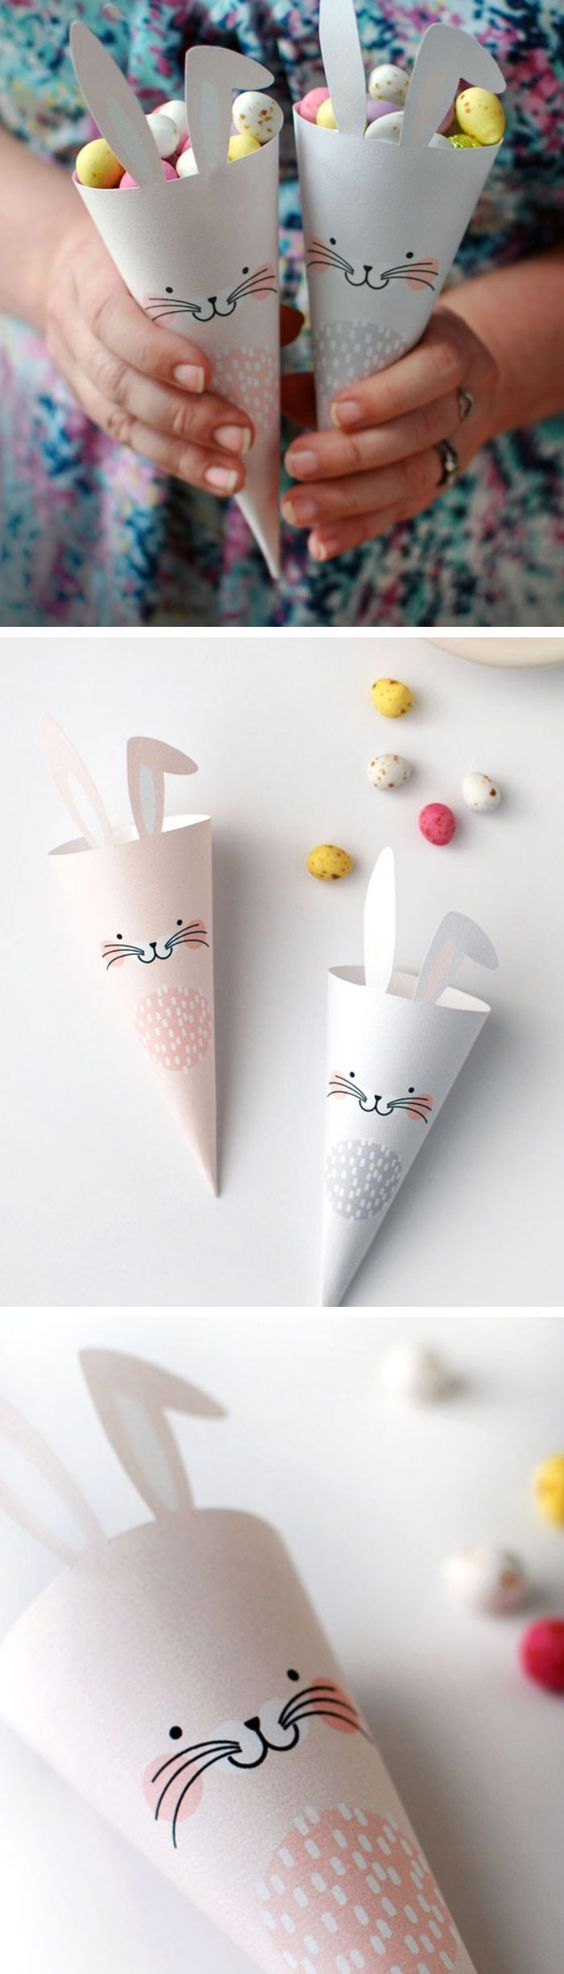 Easter Bunny Treat Cones   Click Pic for 20 DIY Easter Basket Ideas for Kids to Make   Easy Easter Crafts for Kids to Make: